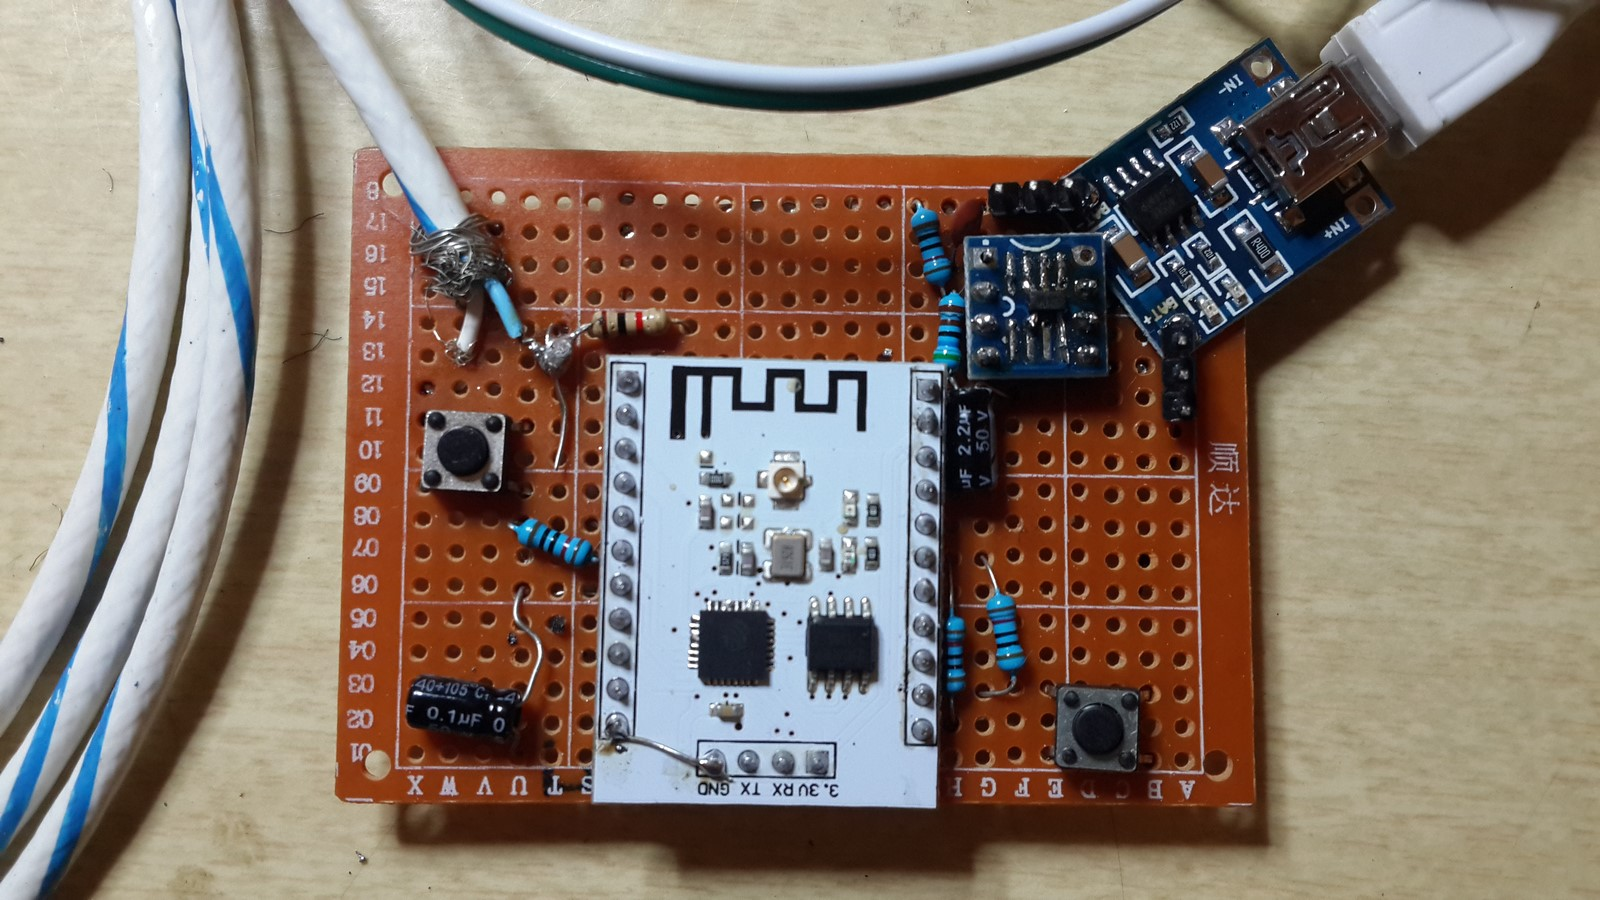 Do I Have Hot Water? Solar Powered ESP8266 With a Thermistor